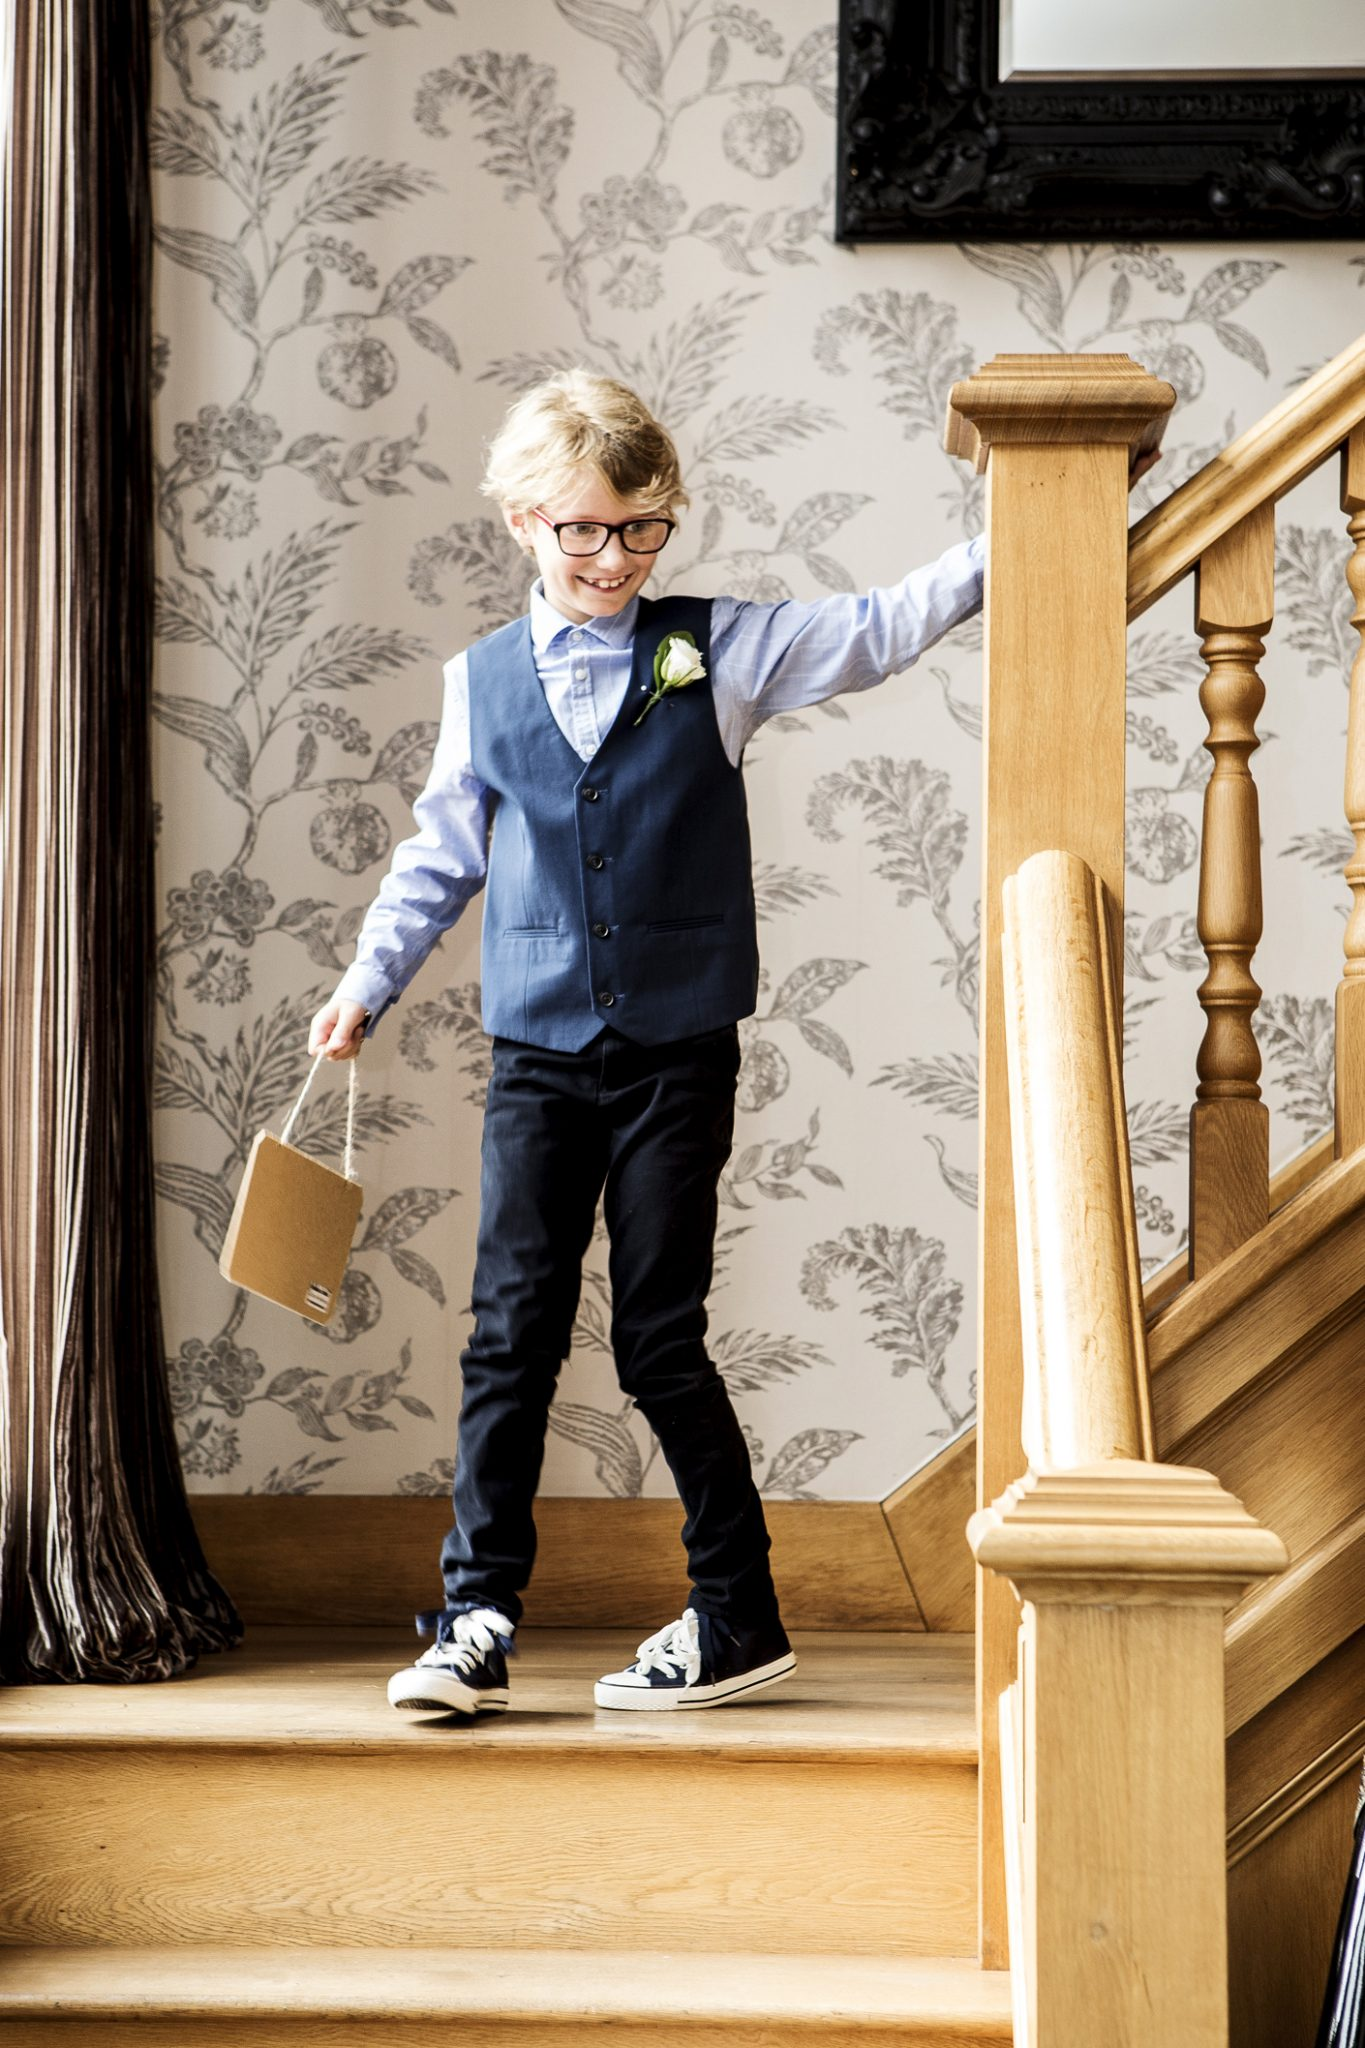 wedding-photography-of-the-page-boy-at-merrydale-manor-knutsford-cheshire